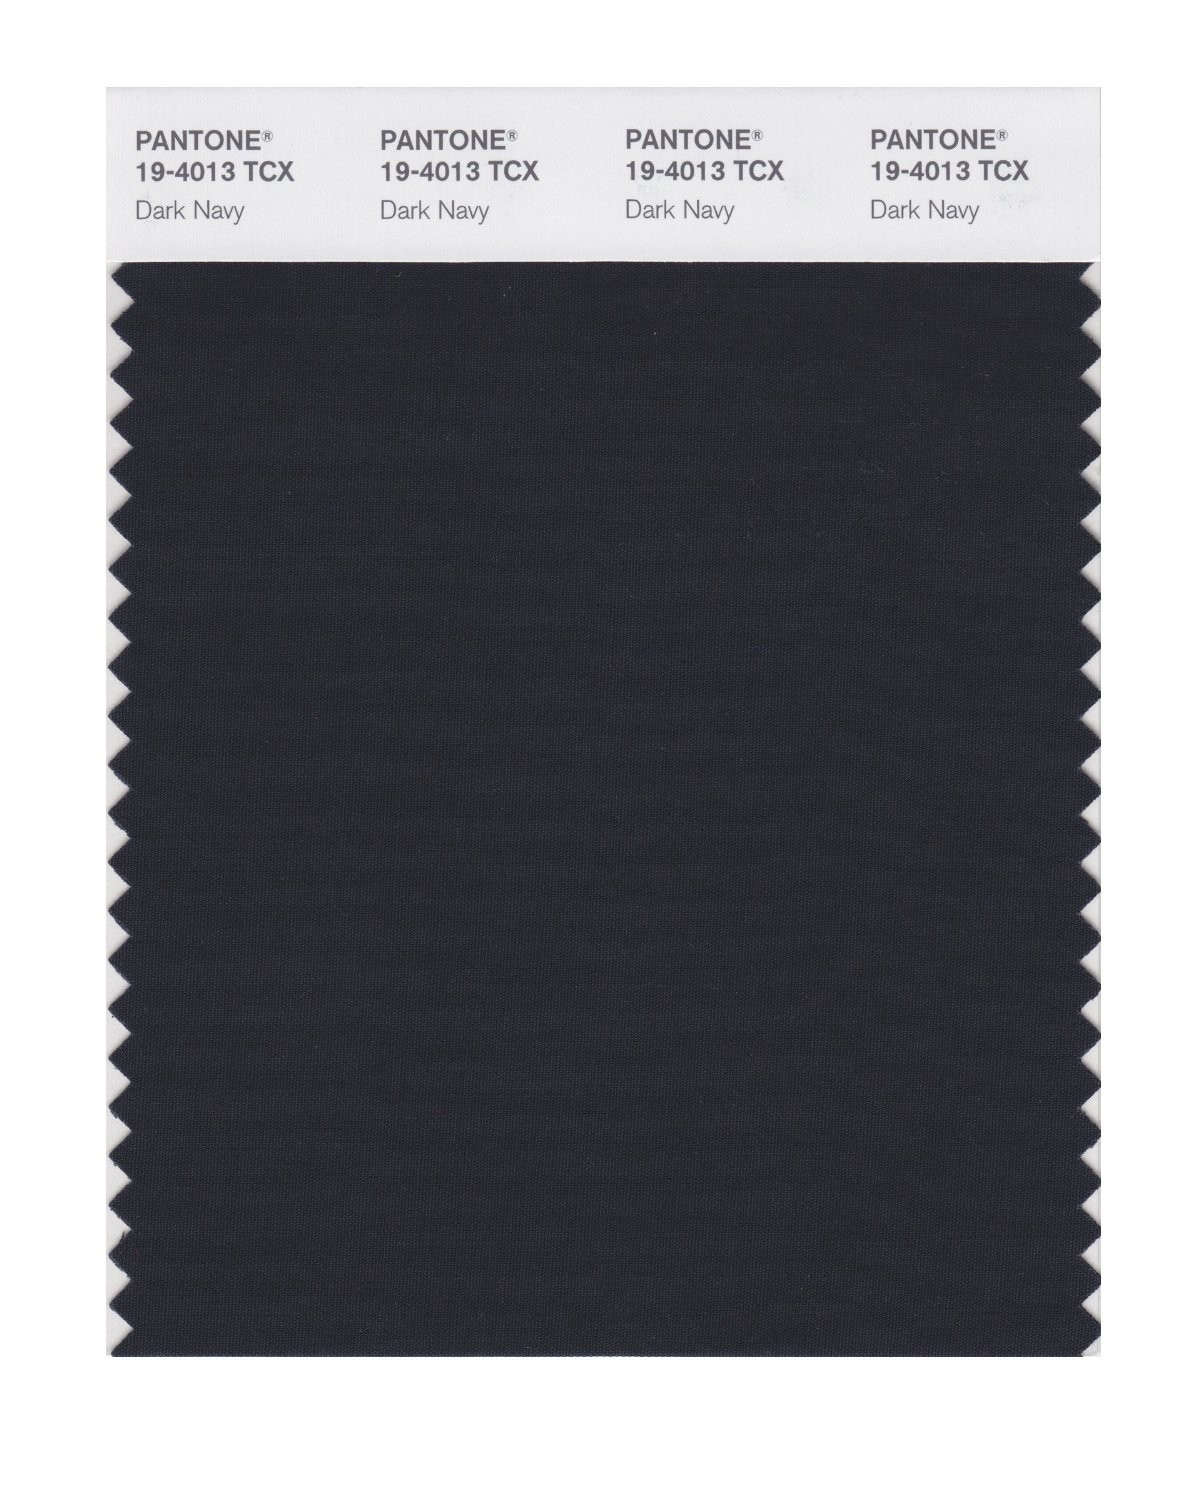 Pantone 19-4013 TCX Swatch Card Dark Navy